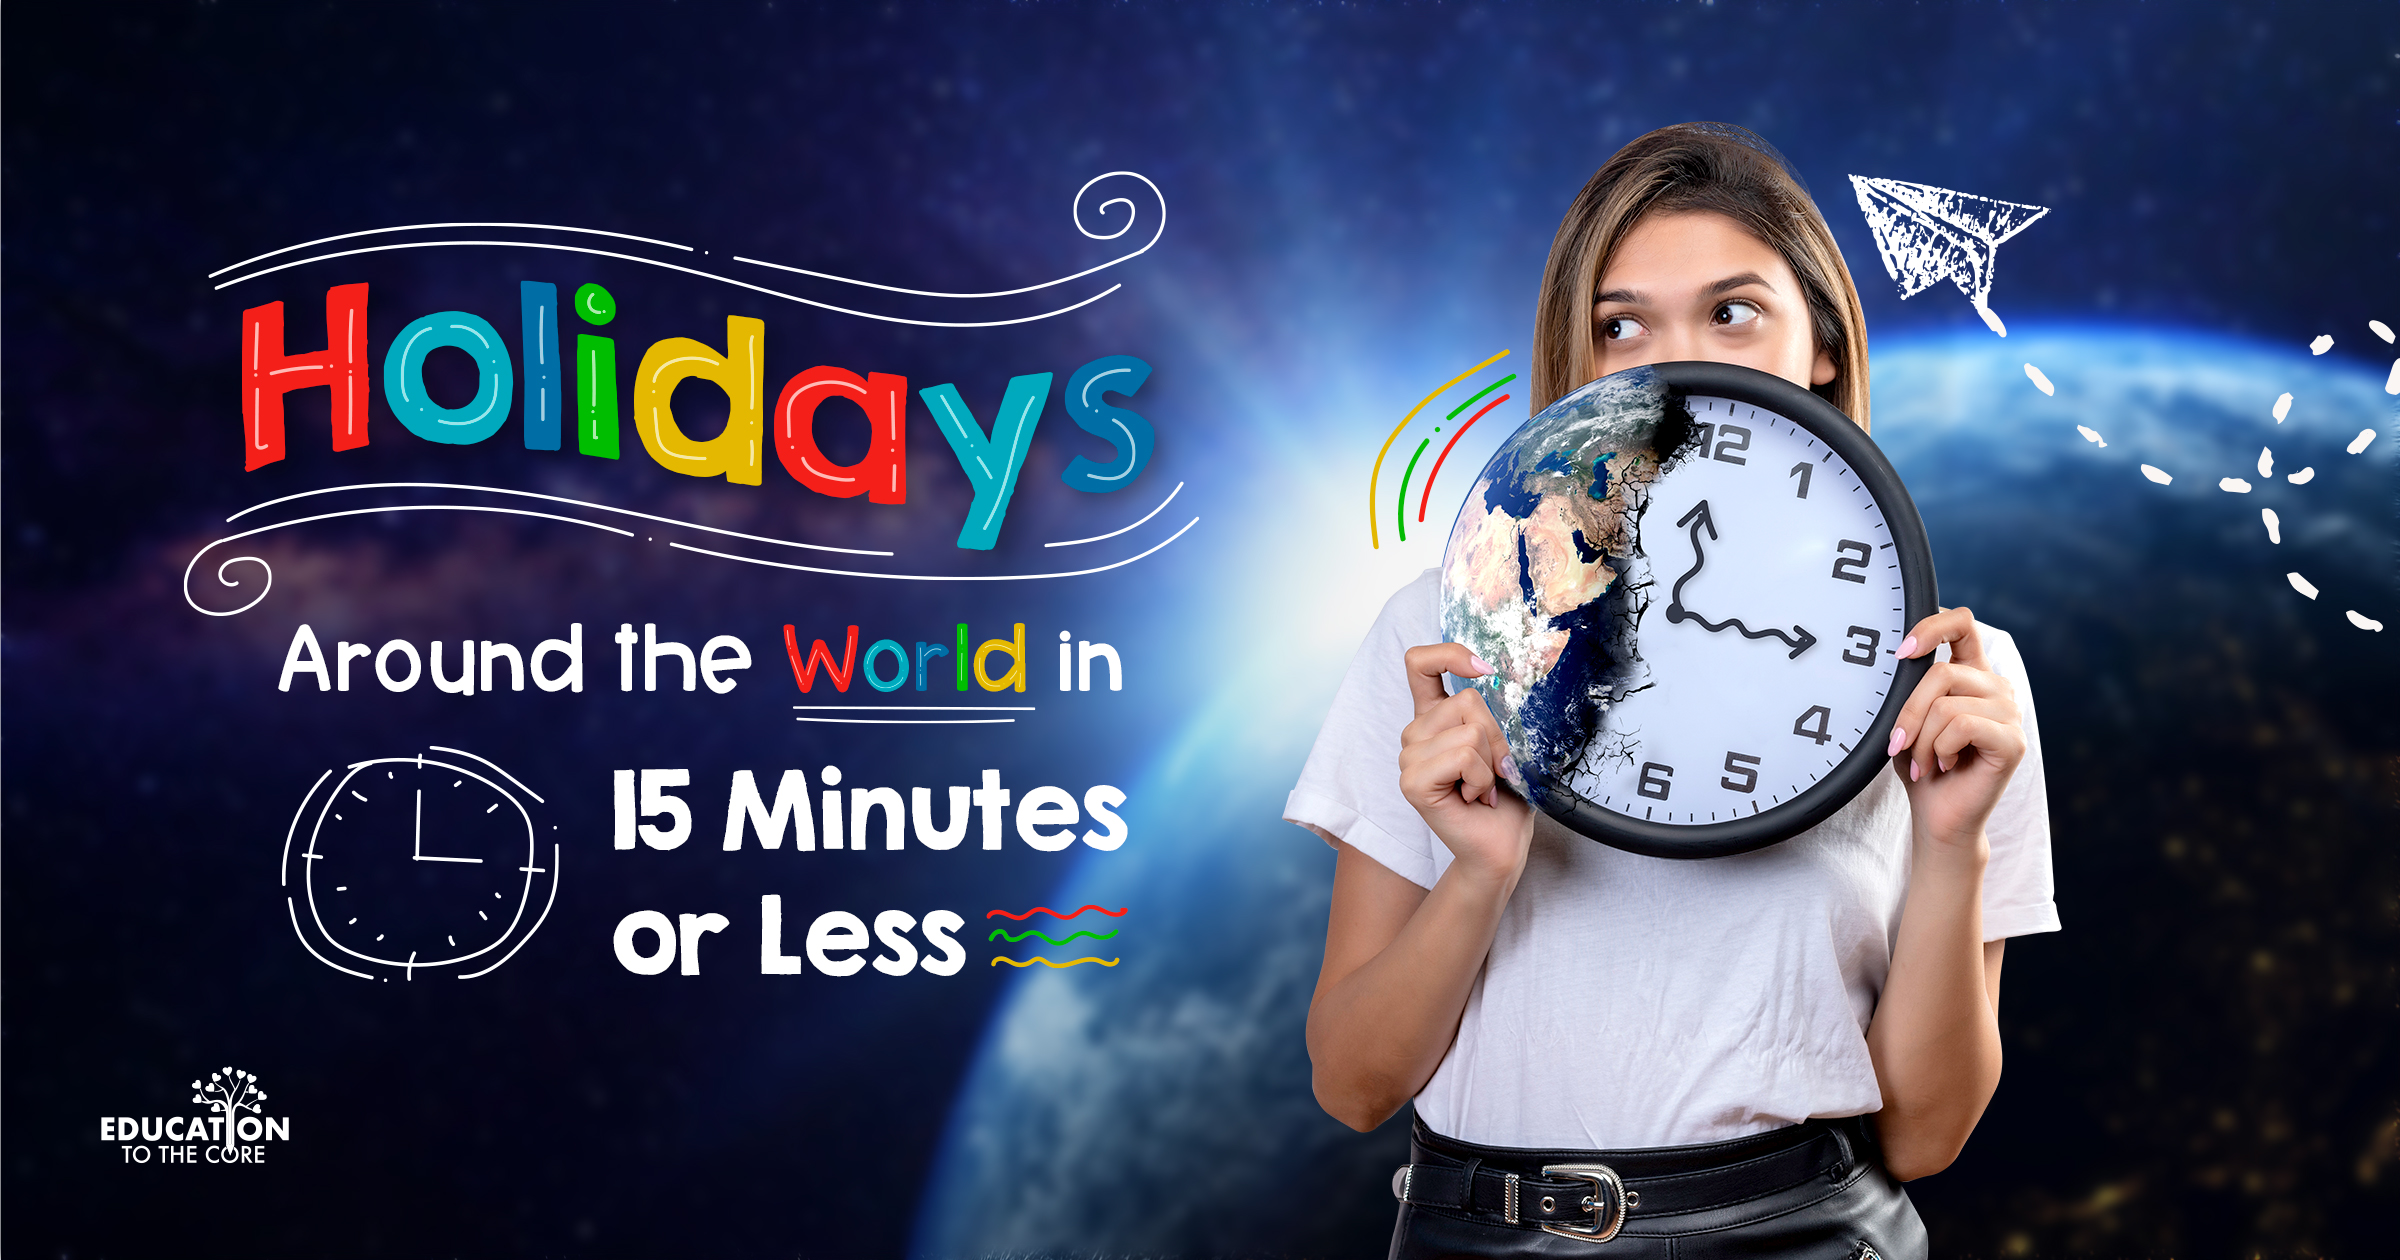 Holidays Around the World in 15 Minutes or Less